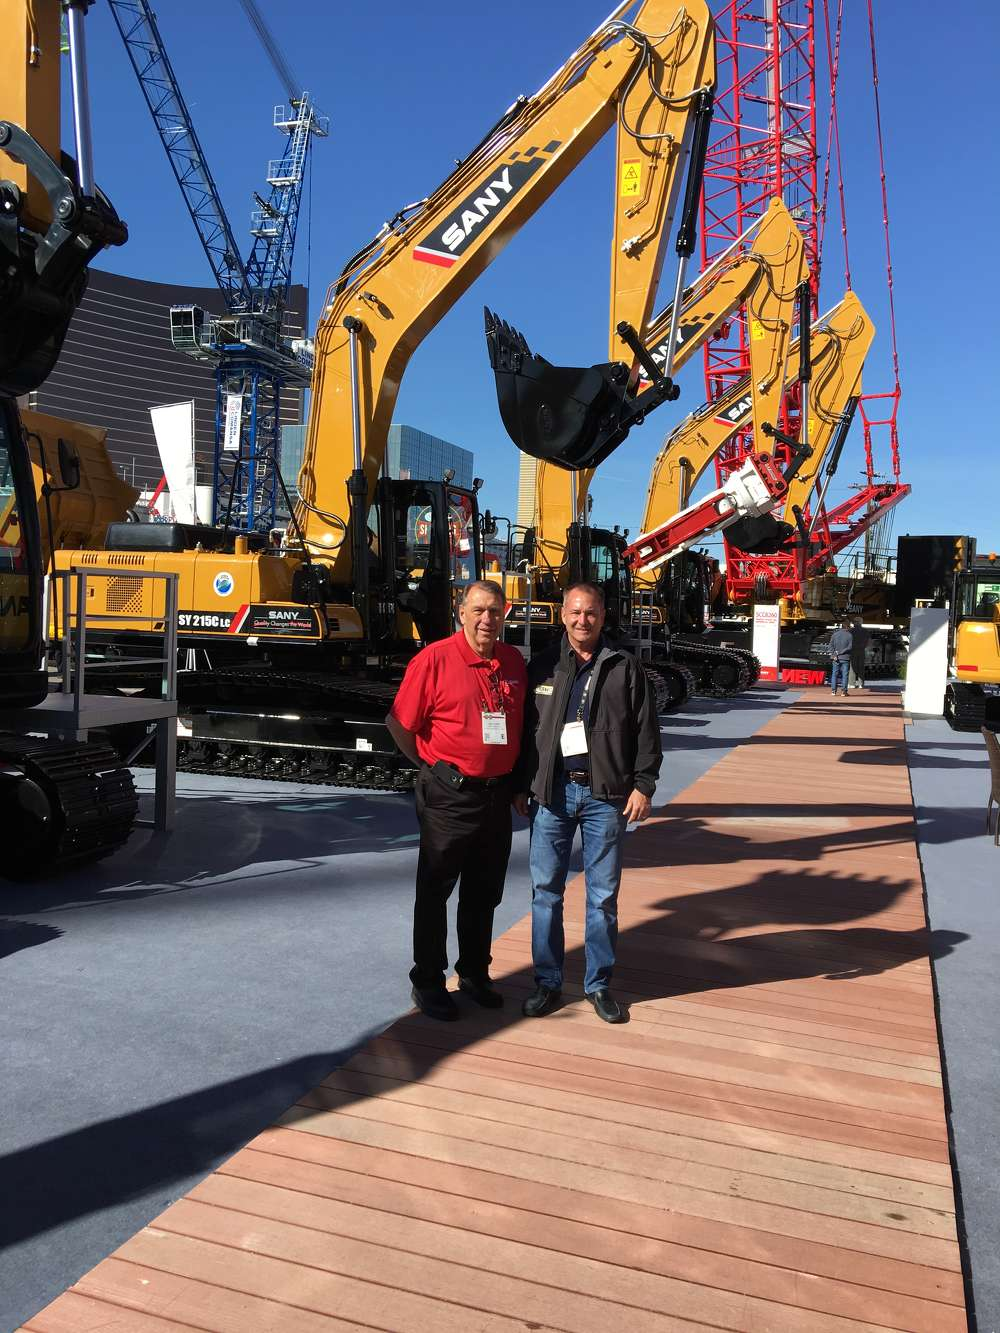 SANY introduced many new models and updates. In front of the SANY SY215LC and SY235LC top-selling excavators are Bill Step (L) of SANY and Jeff Udelson of Easton Sales & Rentals in Houston, Texas.